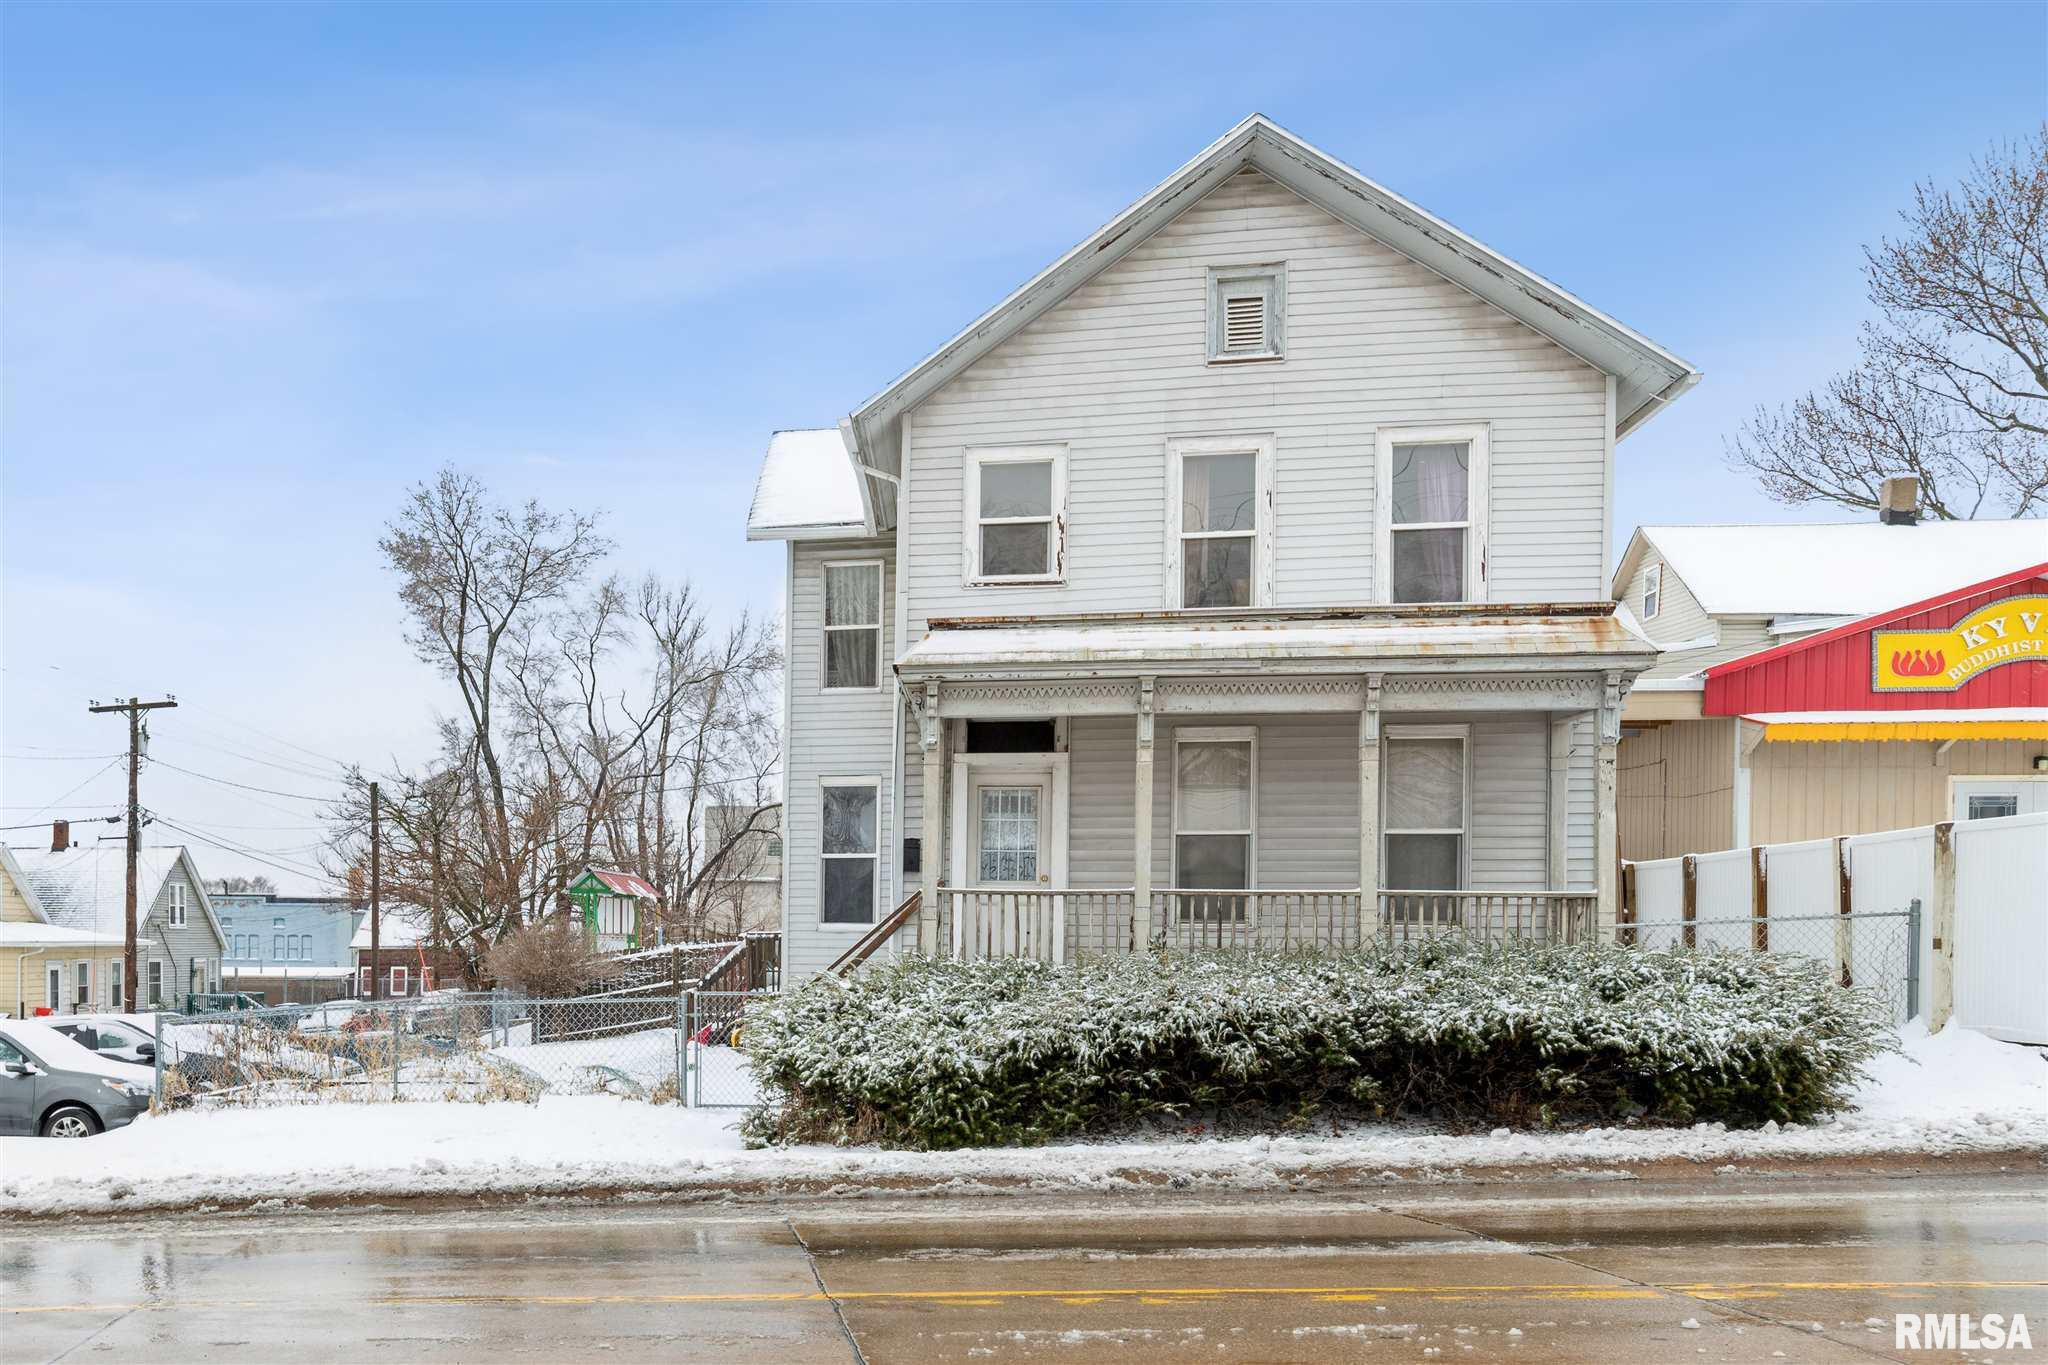 422 N MARQUETTE Property Photo - Davenport, IA real estate listing